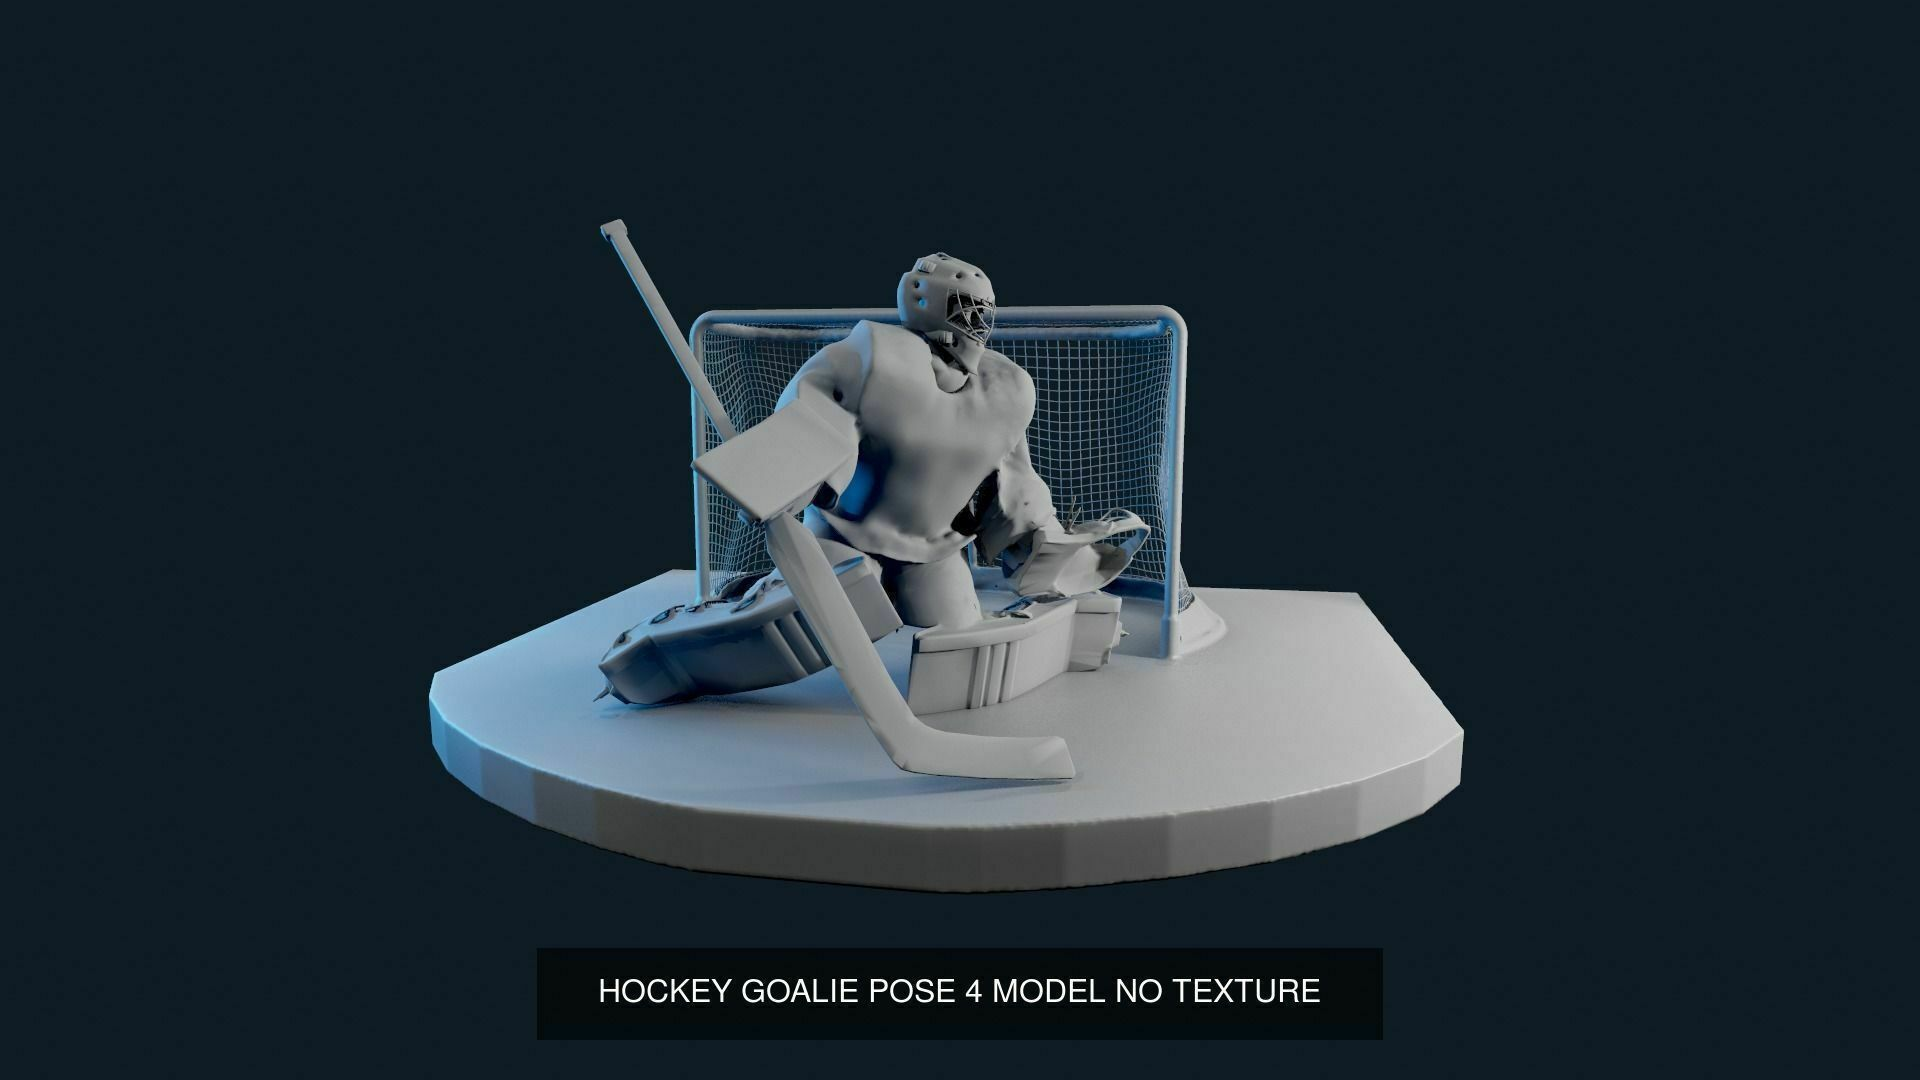 ultimate-hockey-poses-pack-model-no-texture-3d-model-max-obj-fbx-stl-tbscene (10).jpg Download OBJ file ULTIMATE HOCKEY POSES PACK MODEL NO TEXTURE 3D Model Collection • 3D printing template, NightCreativity